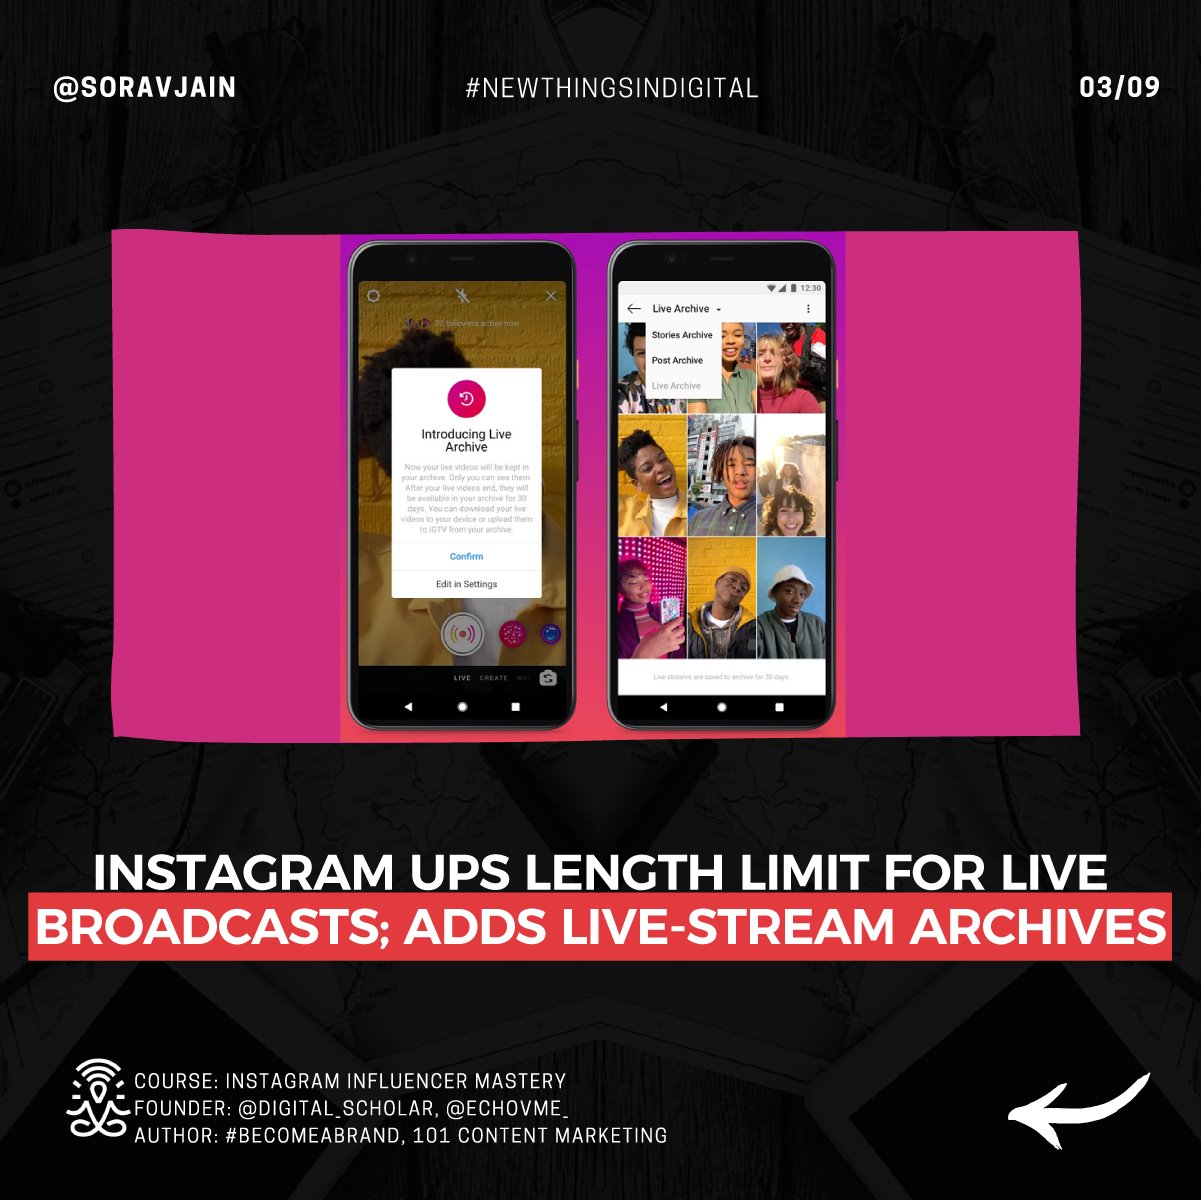 Instagram ups length limit for Live broadcasts; adds live-stream archives